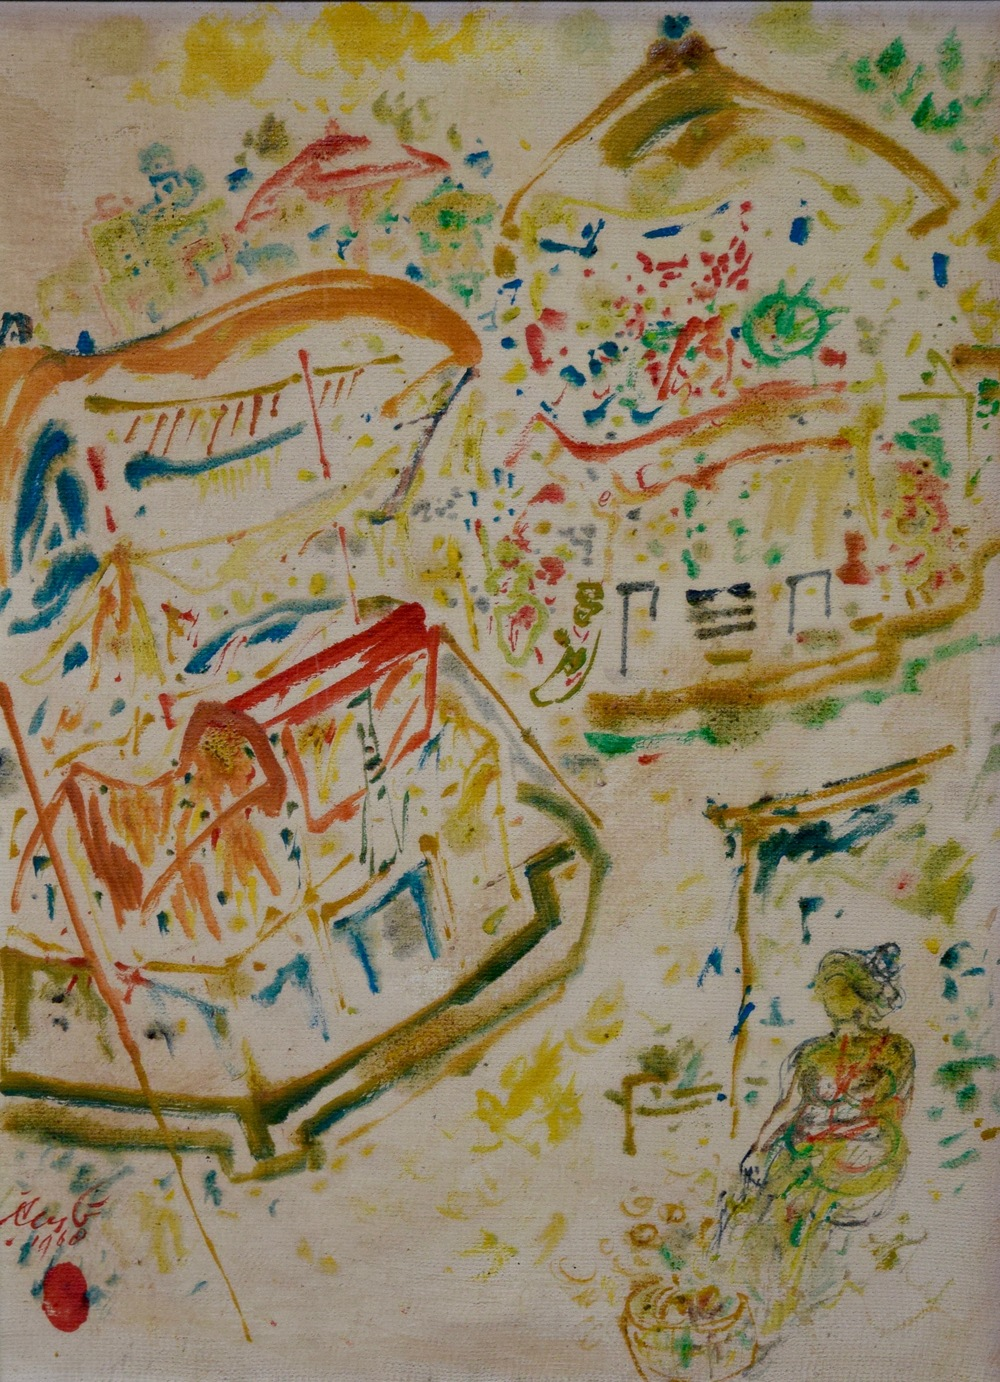 Artist: Rusli, Indonesia    Title: Pasar 2 Medium: oil on canvas   Dimension: 60 cm x 45 cm Year: 1968